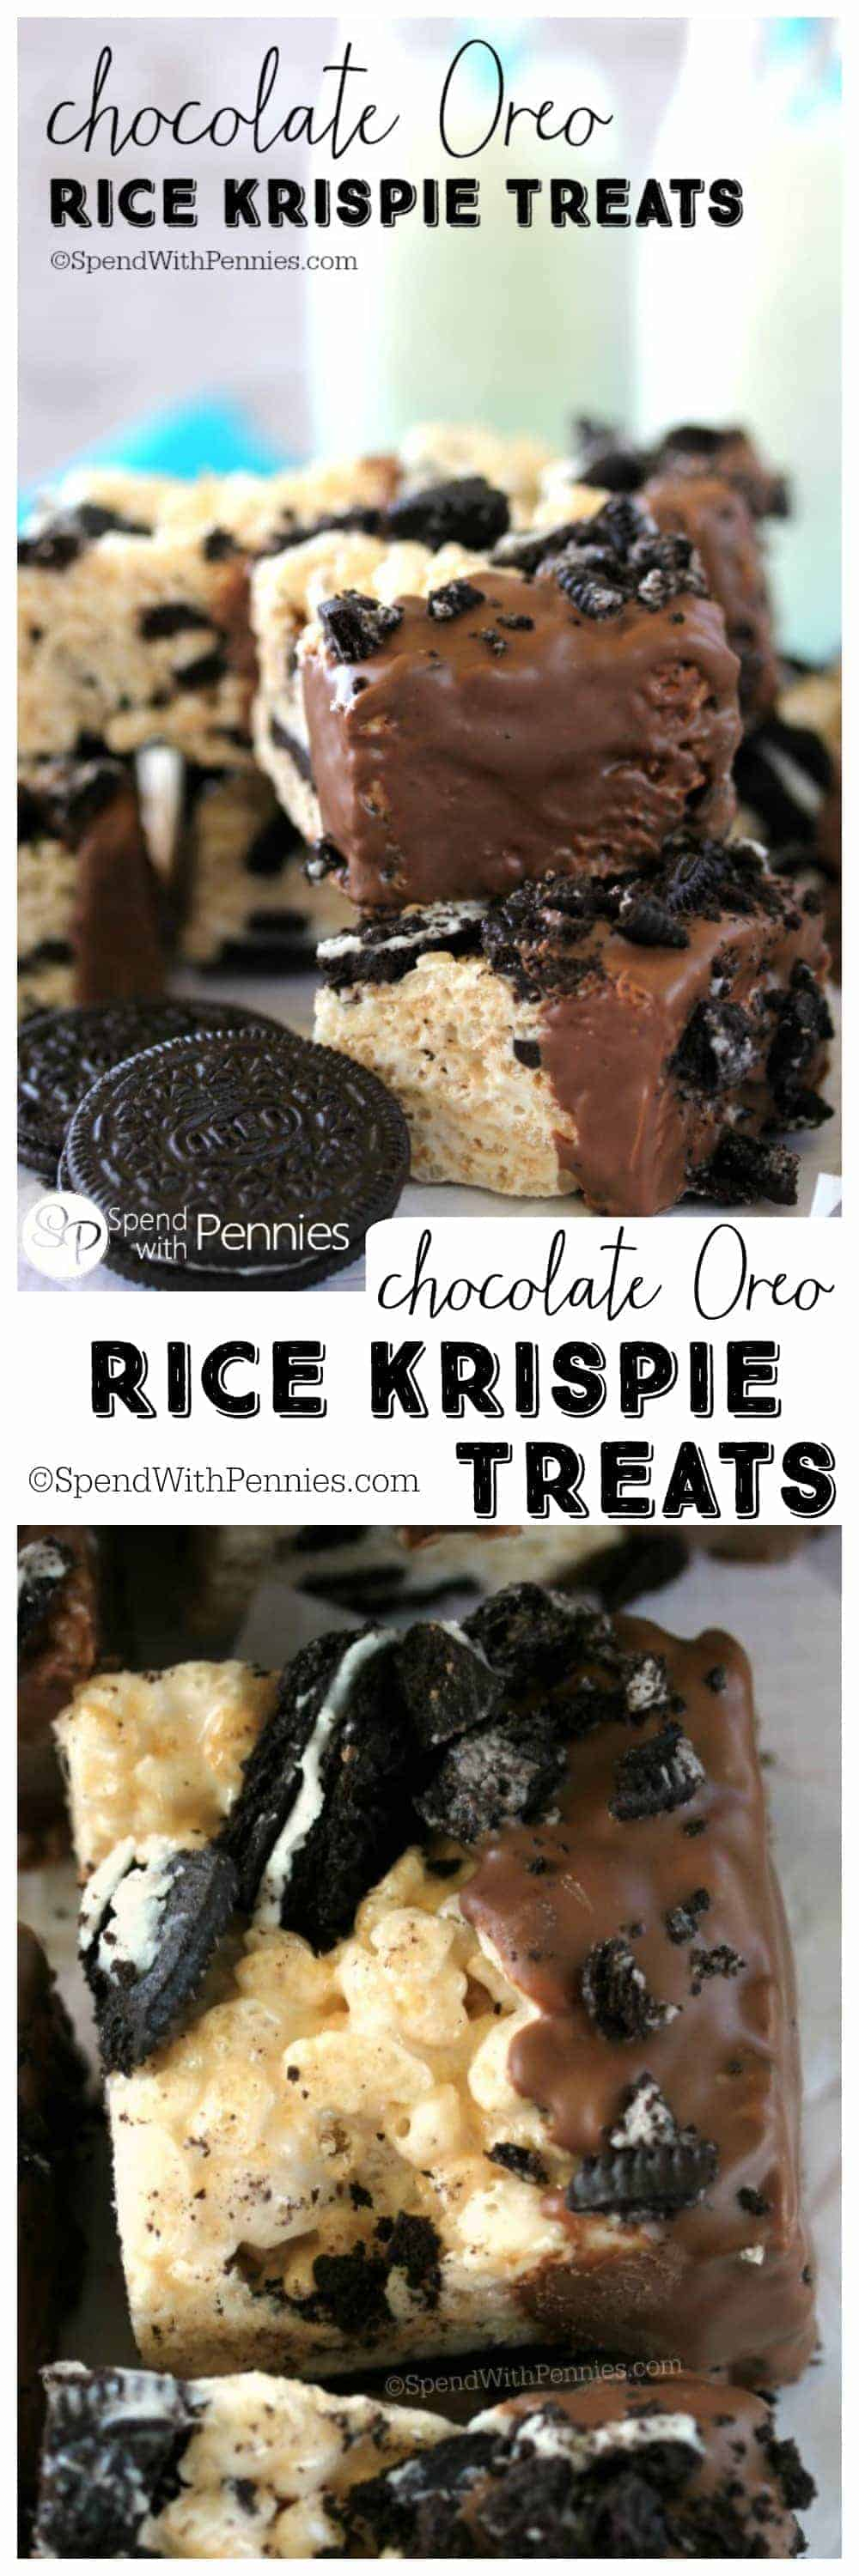 Chocolate Oreo Rice Krispie Treats